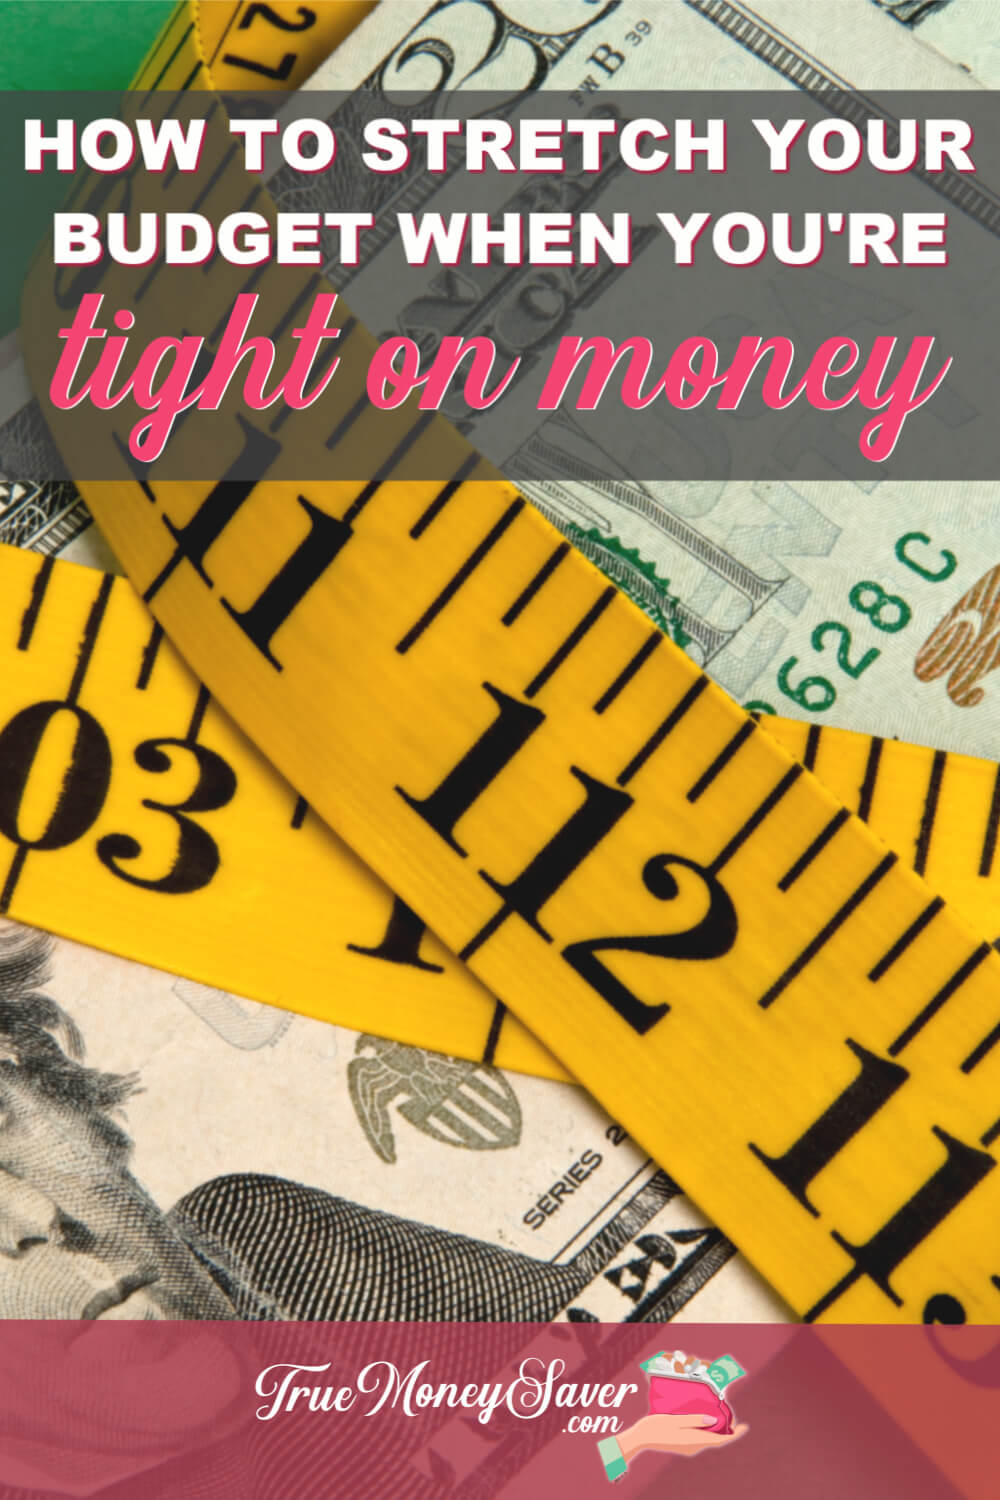 Need to make your paycheck stretch a little farther this month even if you\'re living on a budget? Learn how to stretch your budget with these tips! Plus, your budget saving plan will get easier when you learn how to find fun family freebies! Start with these tips!